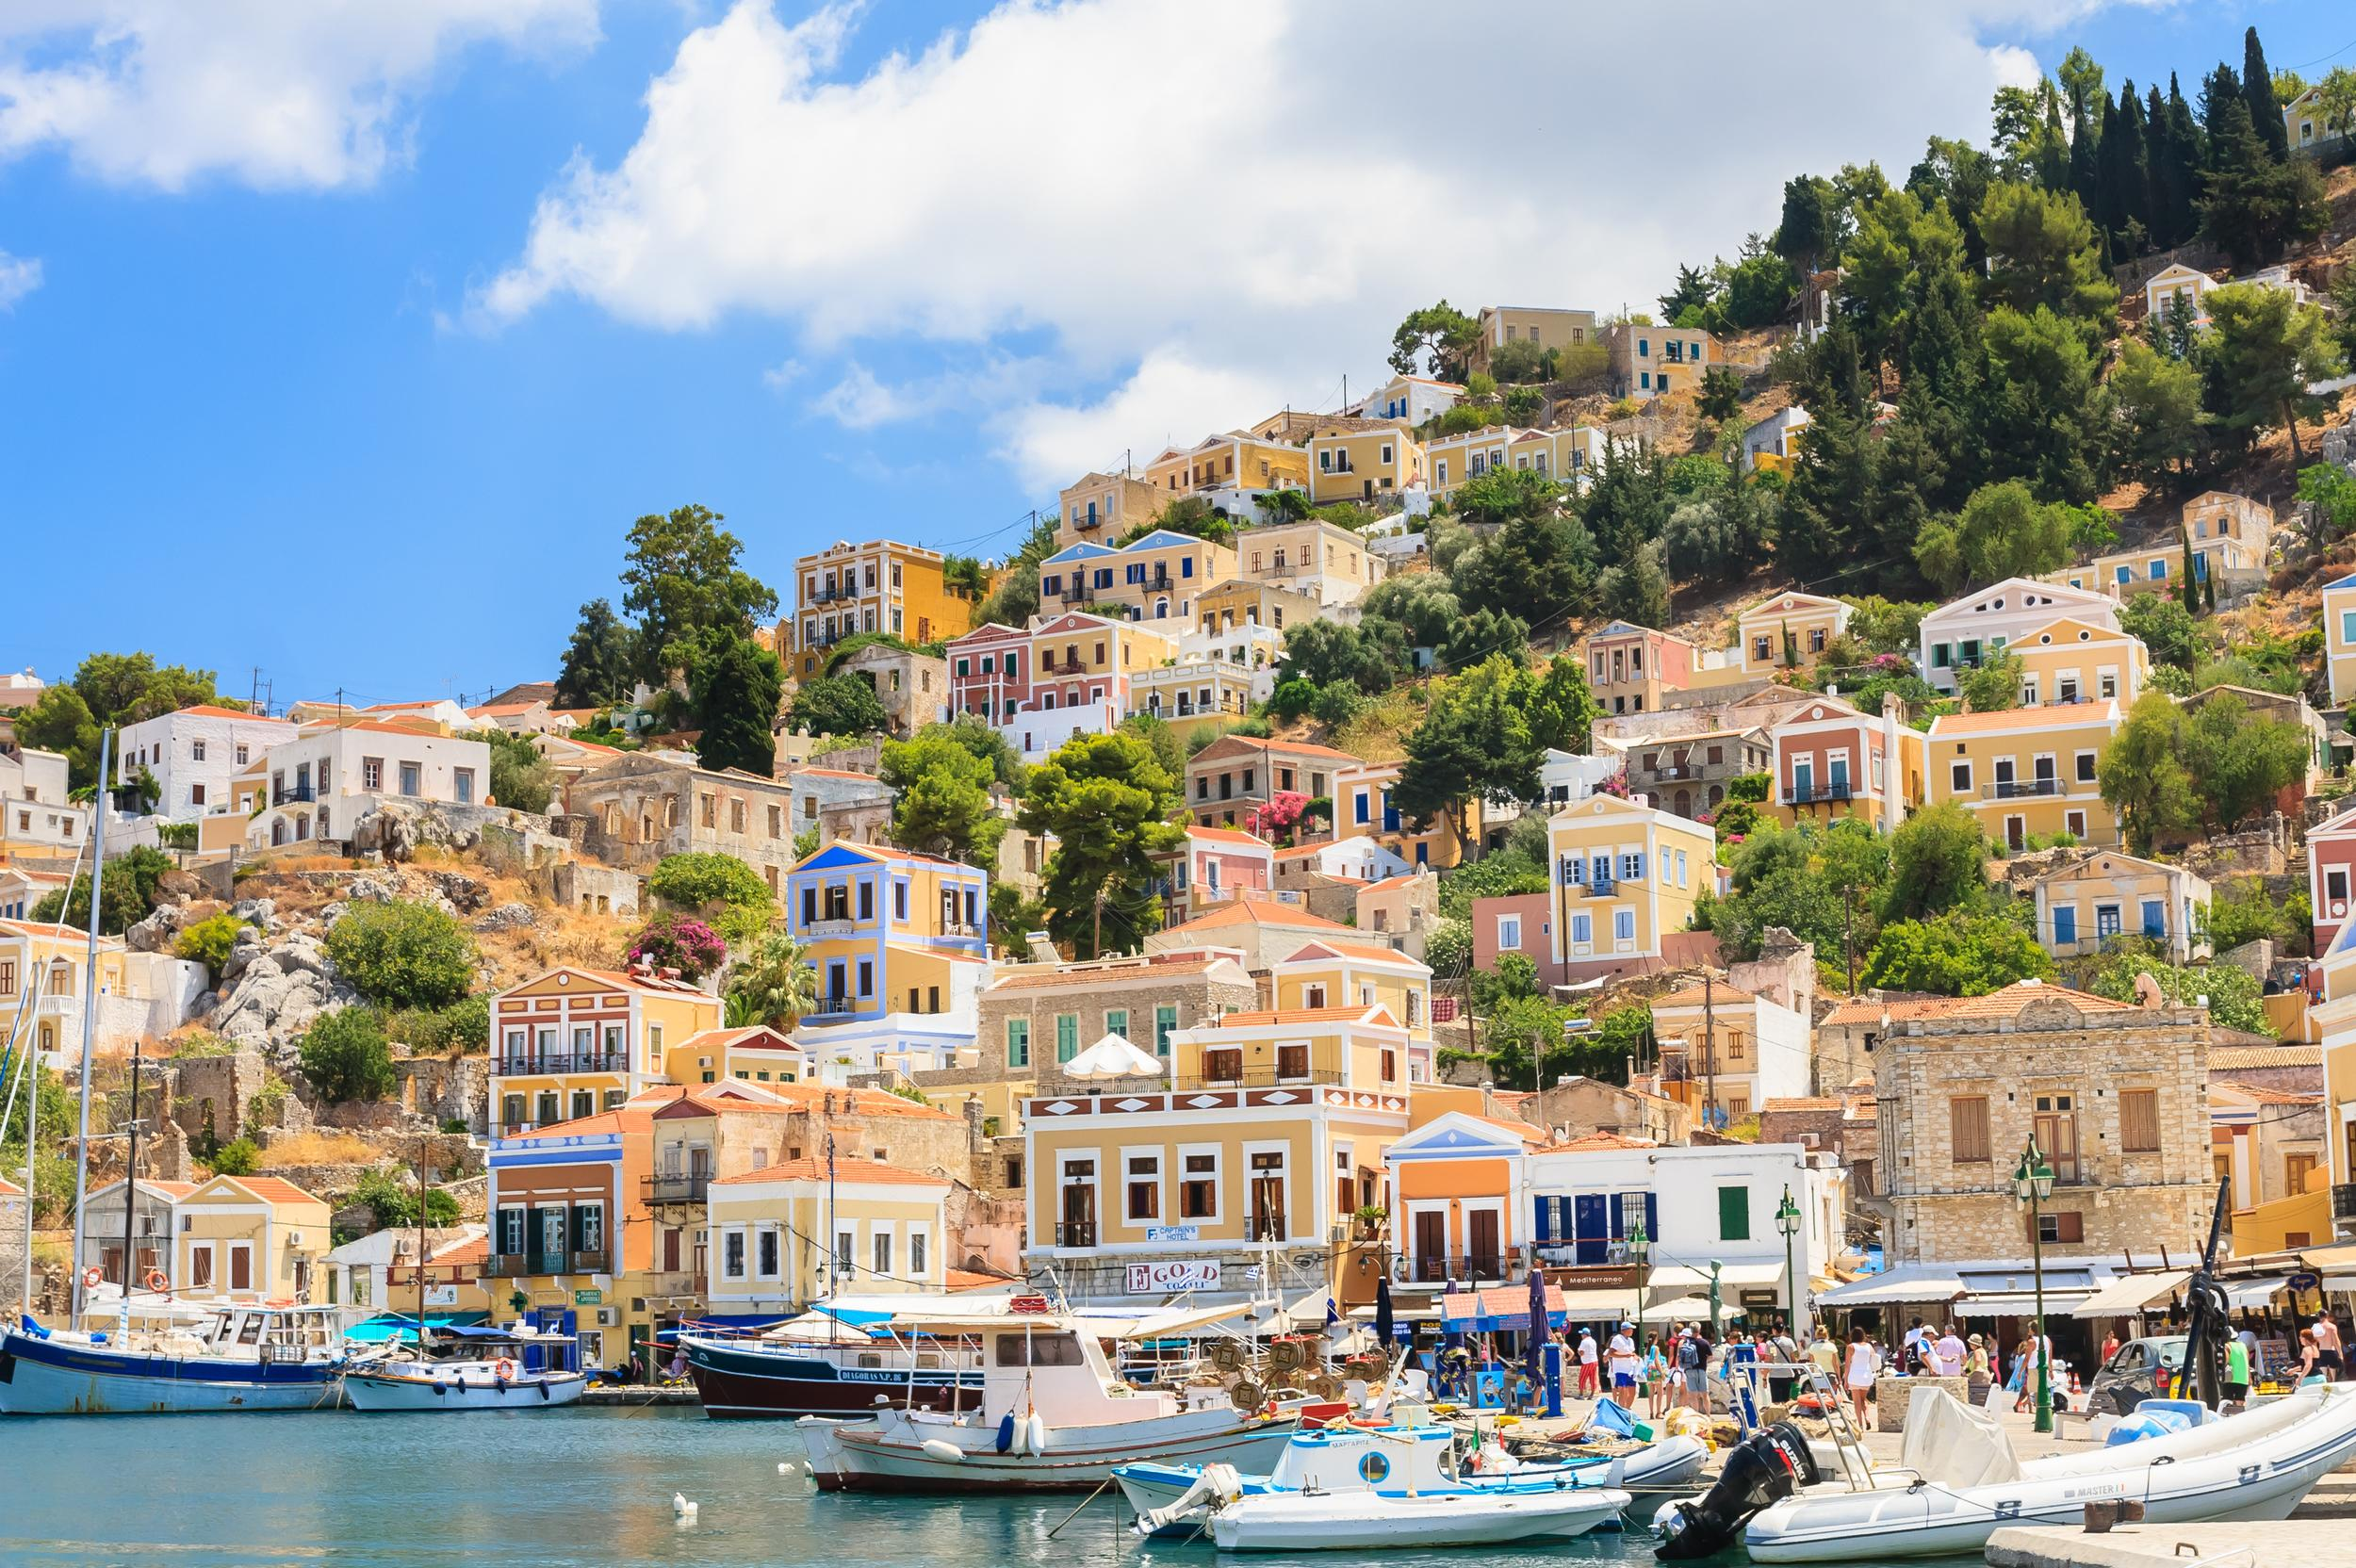 """<p>With one of the prettiest harbours in Greece, Symi is a picturesque island boasting impeccable architecture, cafes, restaurants and a slow pace of life, unlike its neighbour <a href=""""http://travel.aol.co.uk/guides/rhodes/"""" target=""""_blank"""">Rhodes</a>. Ideal for a lazy holiday, Symi has wonderful tavernas by the sea, serving up its famous shrimps, and there is no lack of beaches on the island. Many of the sandy and pebbly beaches are off the beaten track and only reachable by taxi. Some of the best places to visit on the island include the monastery of the Archangel Michael Panormitis, scenic village Pedi and Kali Strata, the stony stairway of 500 steps which lead to the upper part of Chorio town.</p>"""